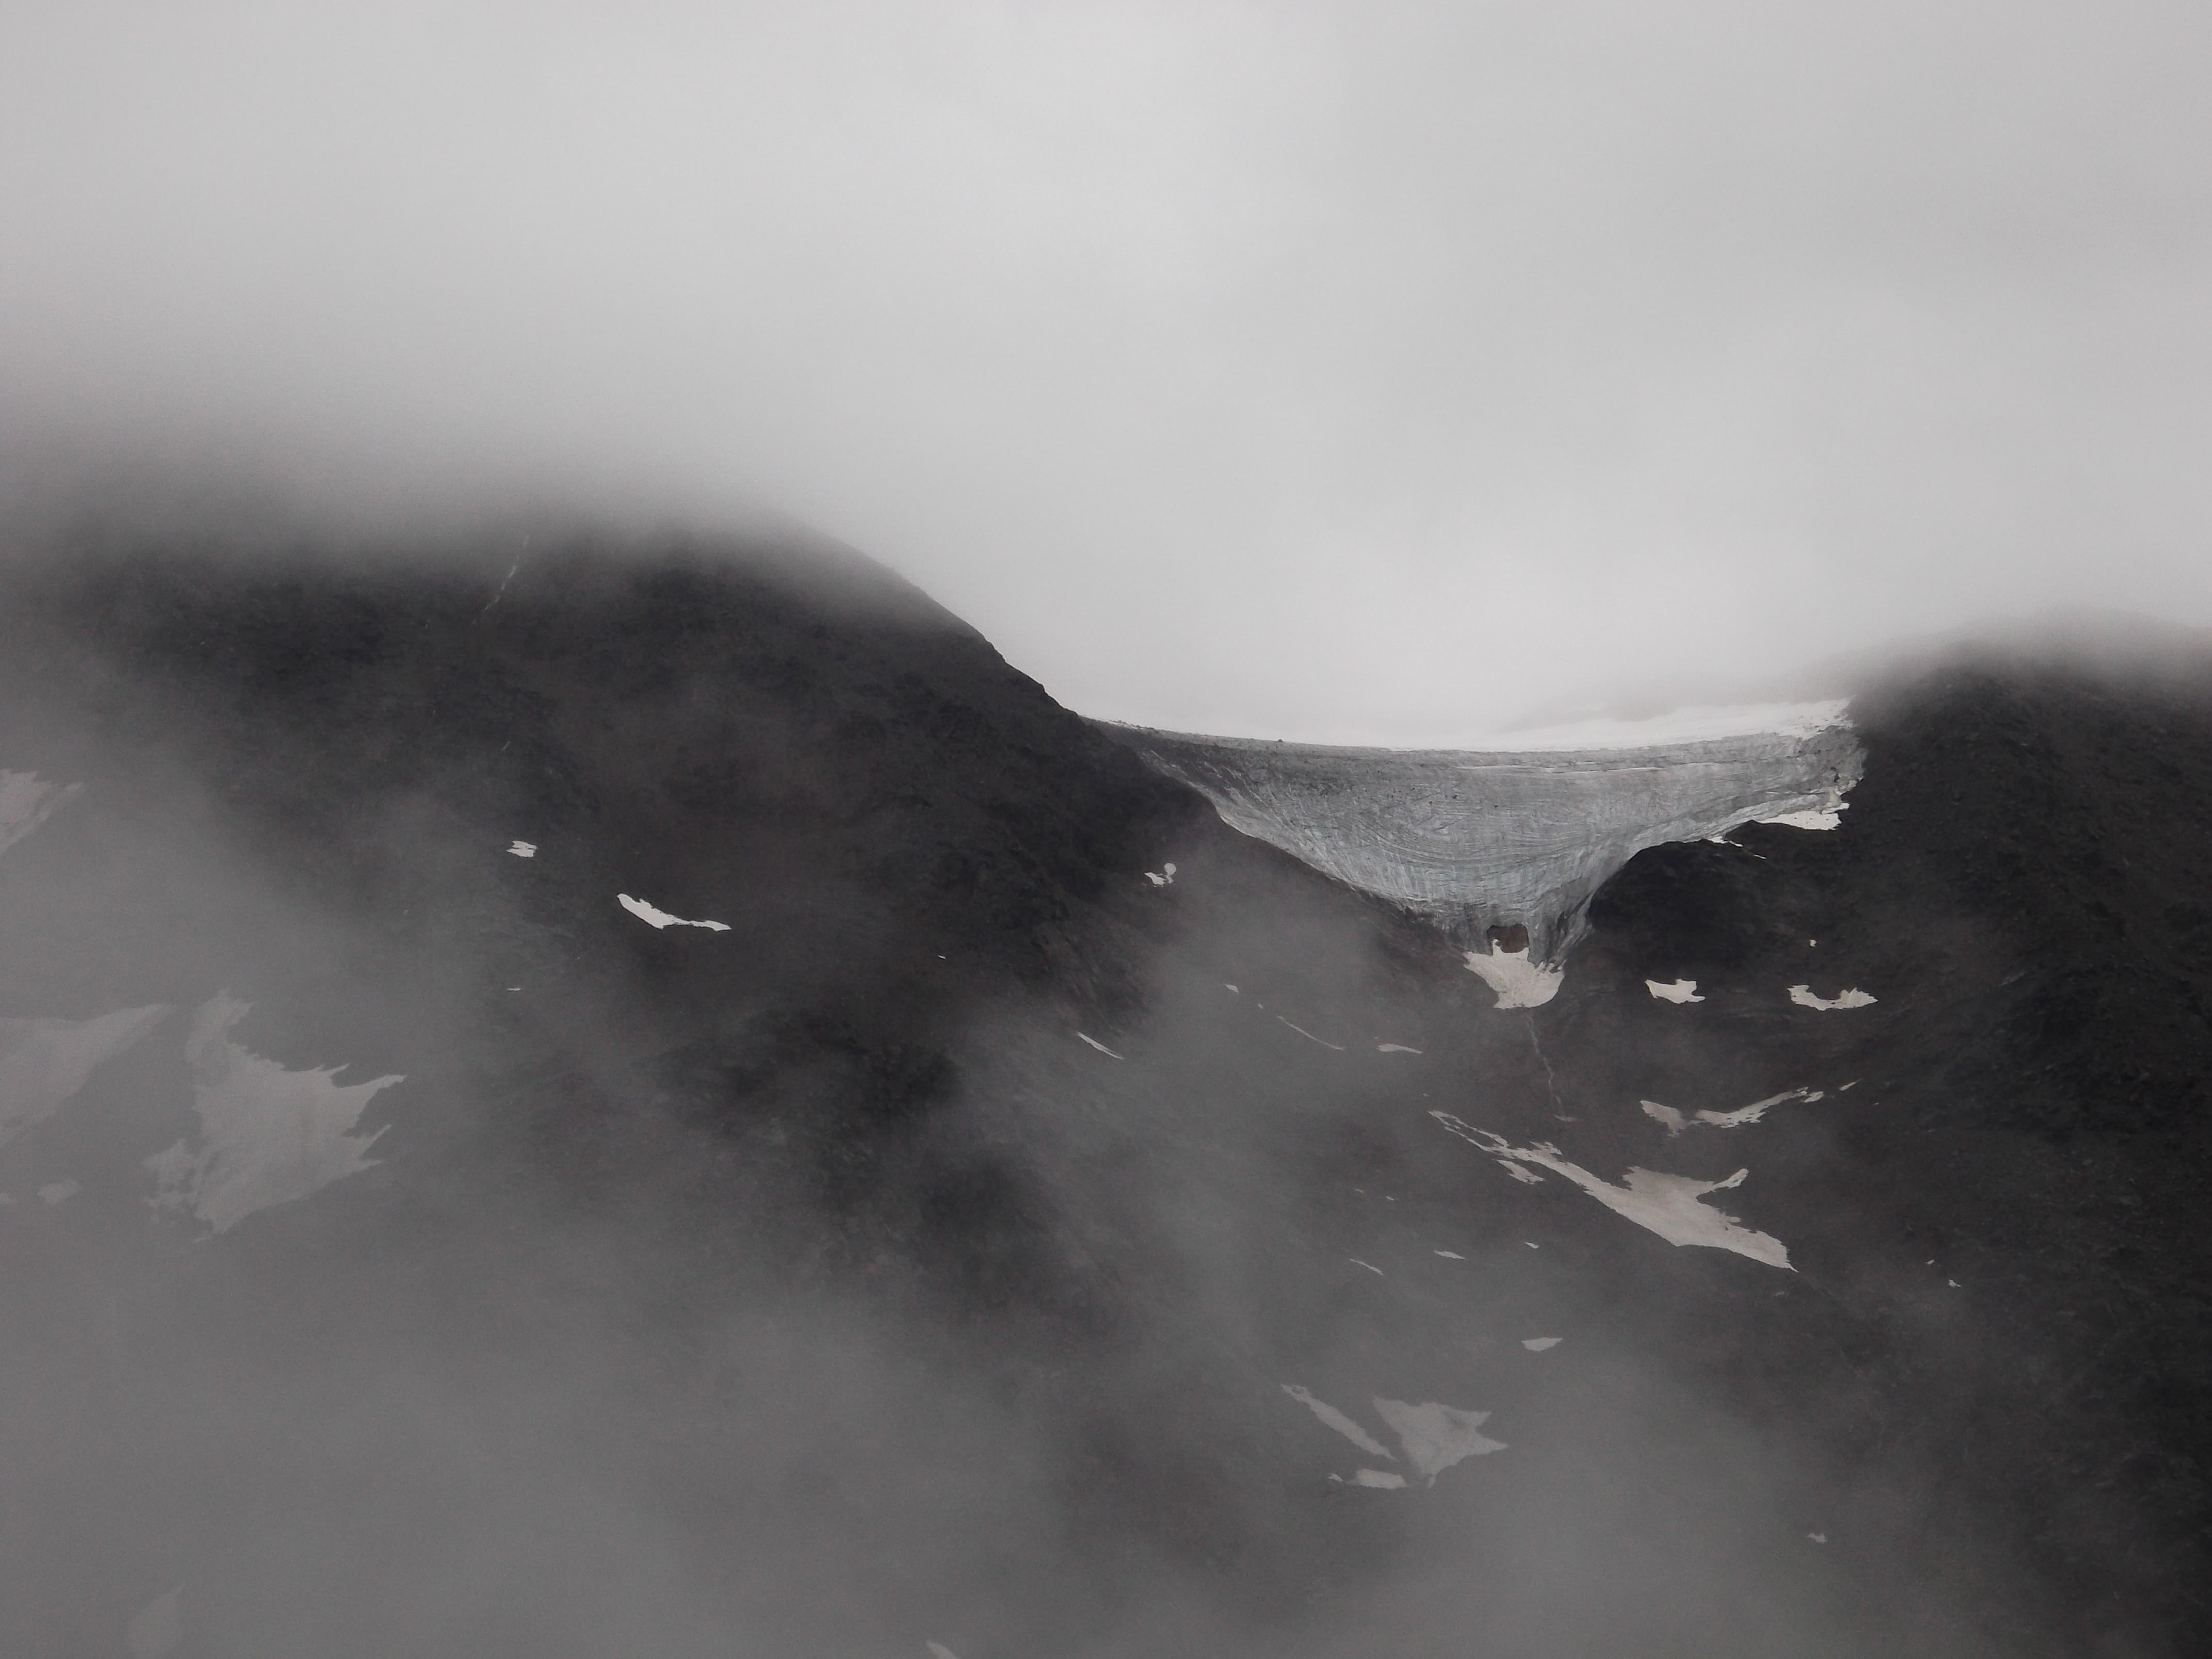 black mountain covered with smokes